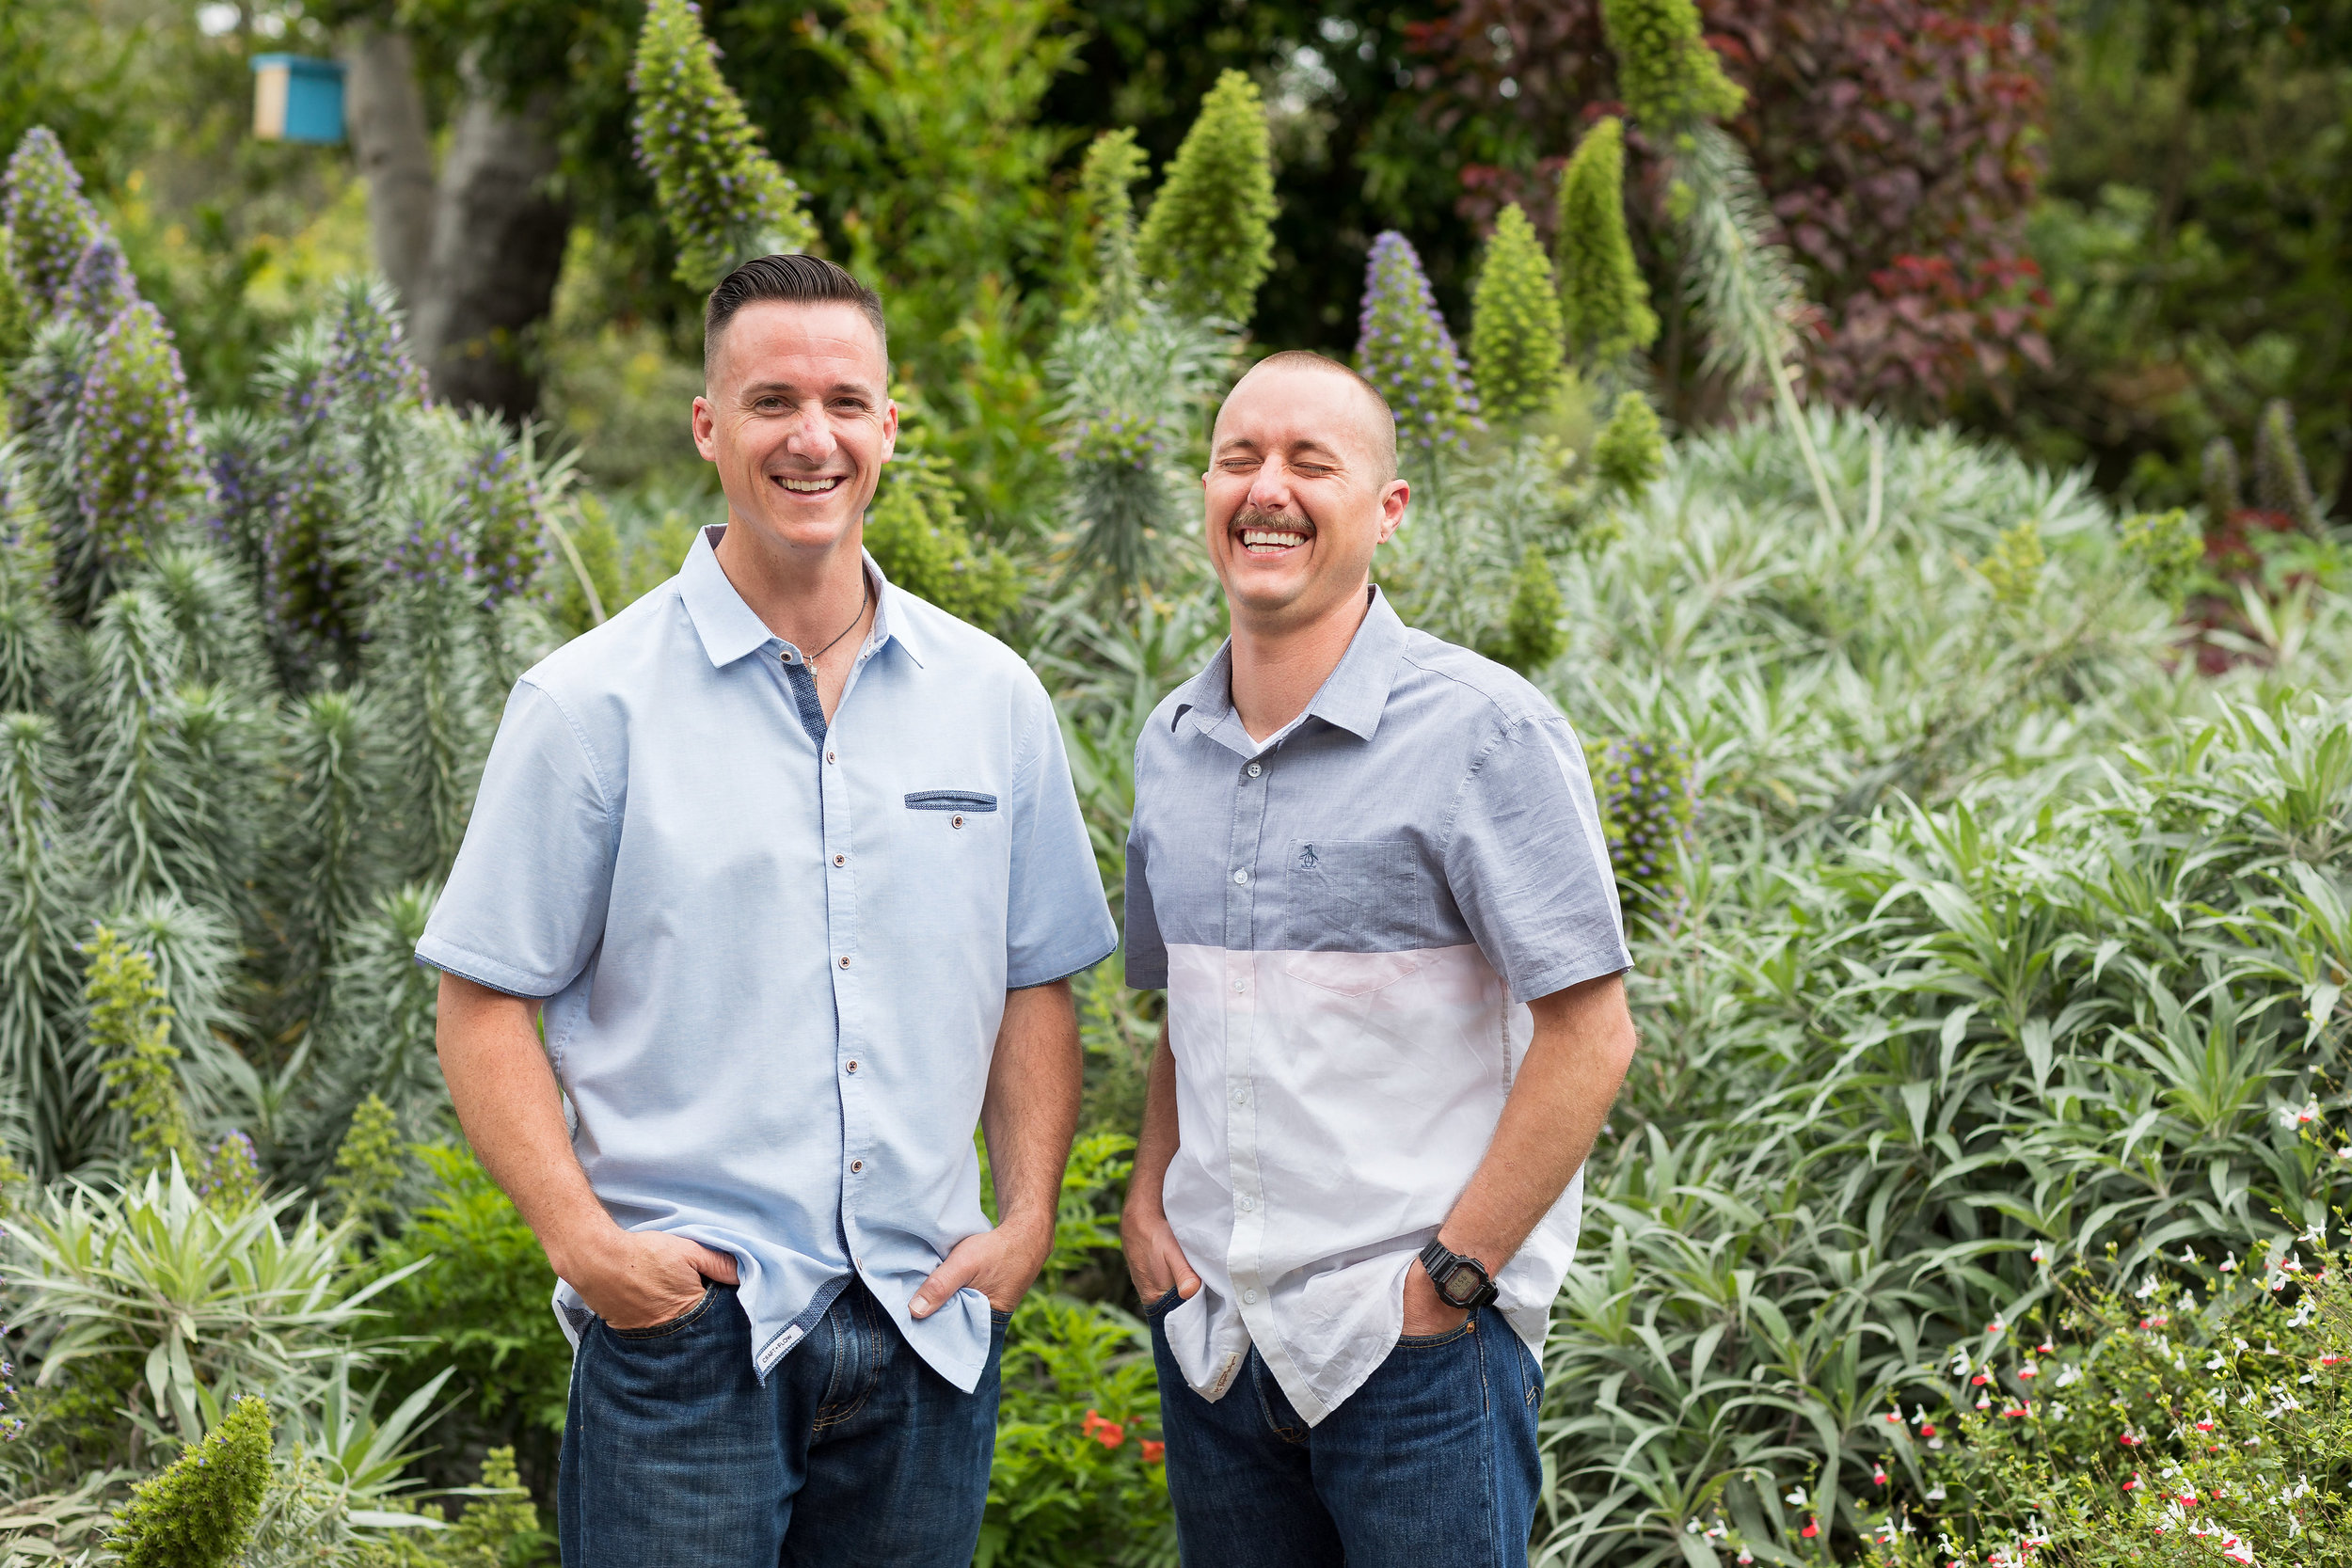 HB family photo of adult brothers in garden.jpg